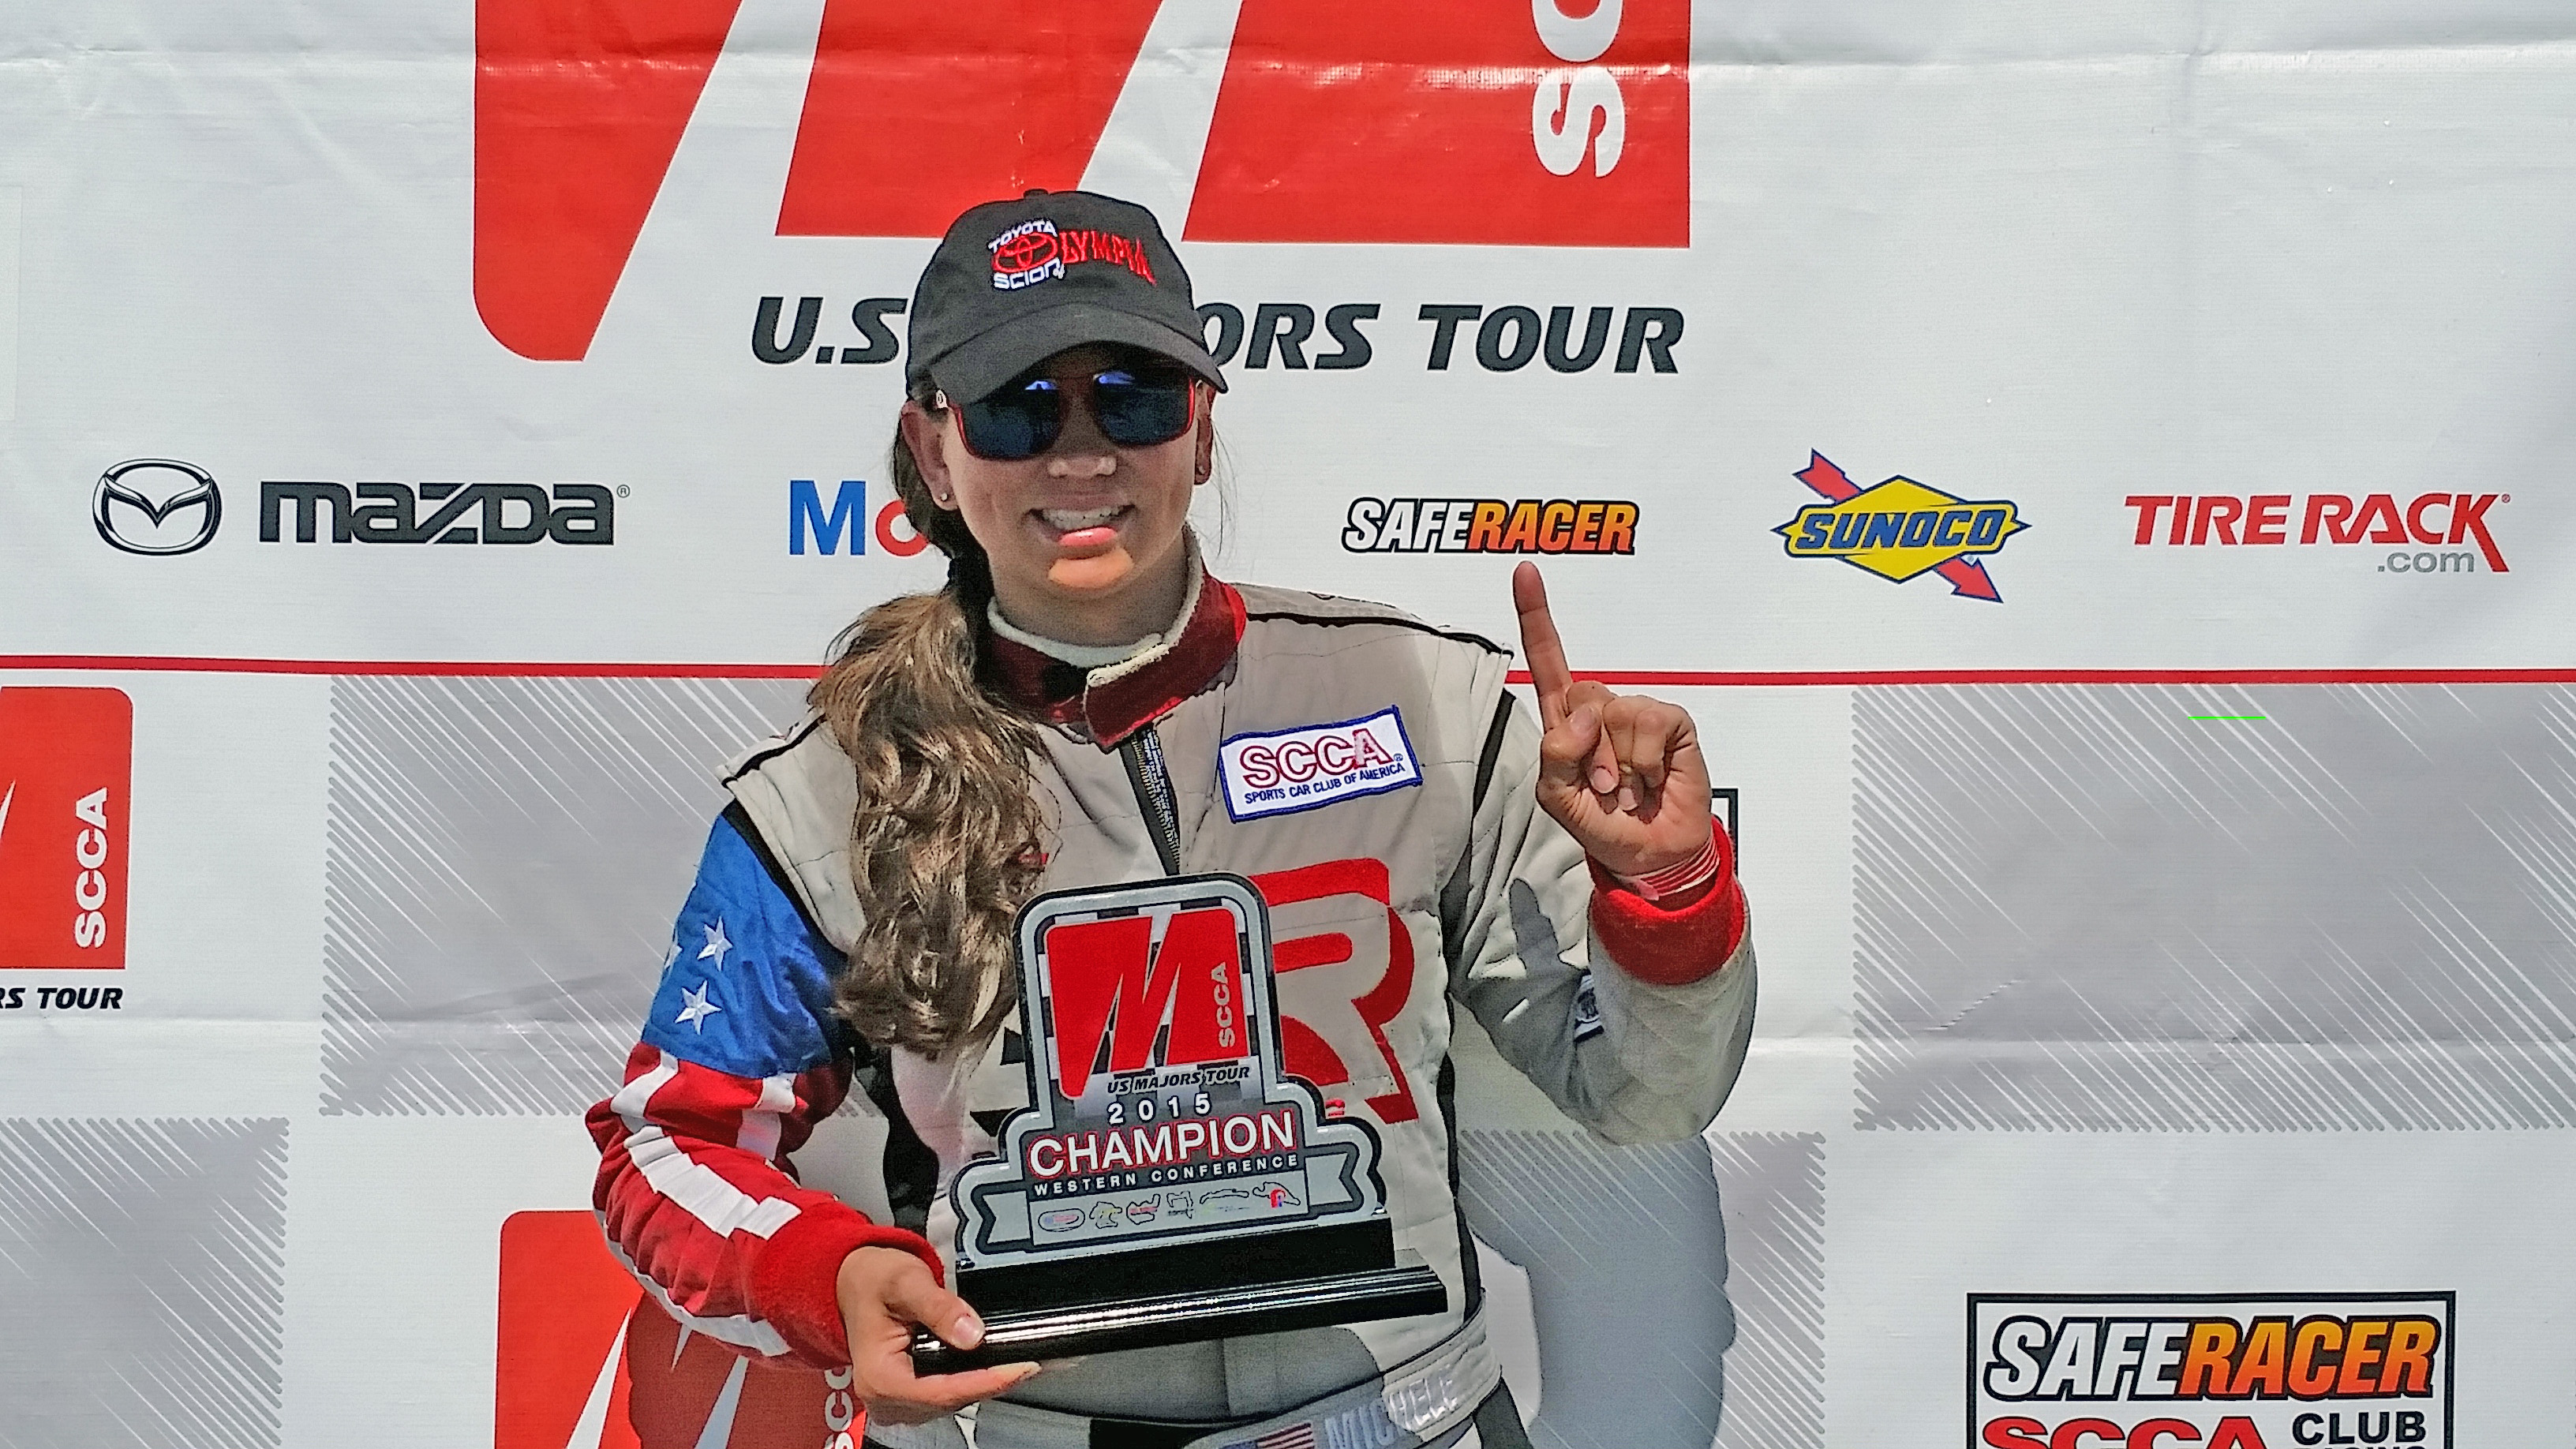 Seibon Carbon Driver Michele Abbate Crowned SCCA US Majors Tour Champion